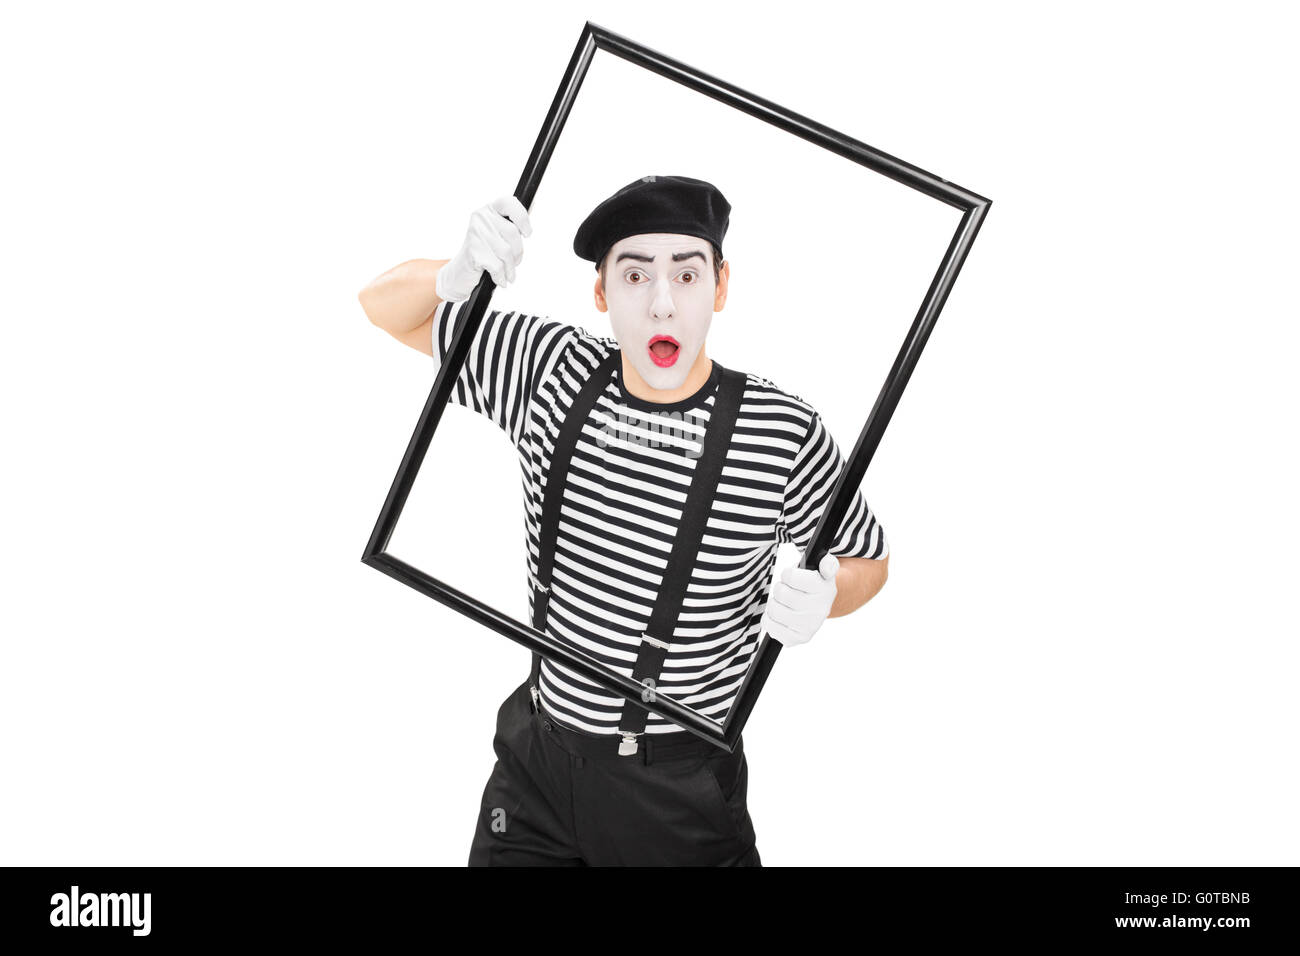 Young mime artist performing with a large black picture frame isolated on white background - Stock Image